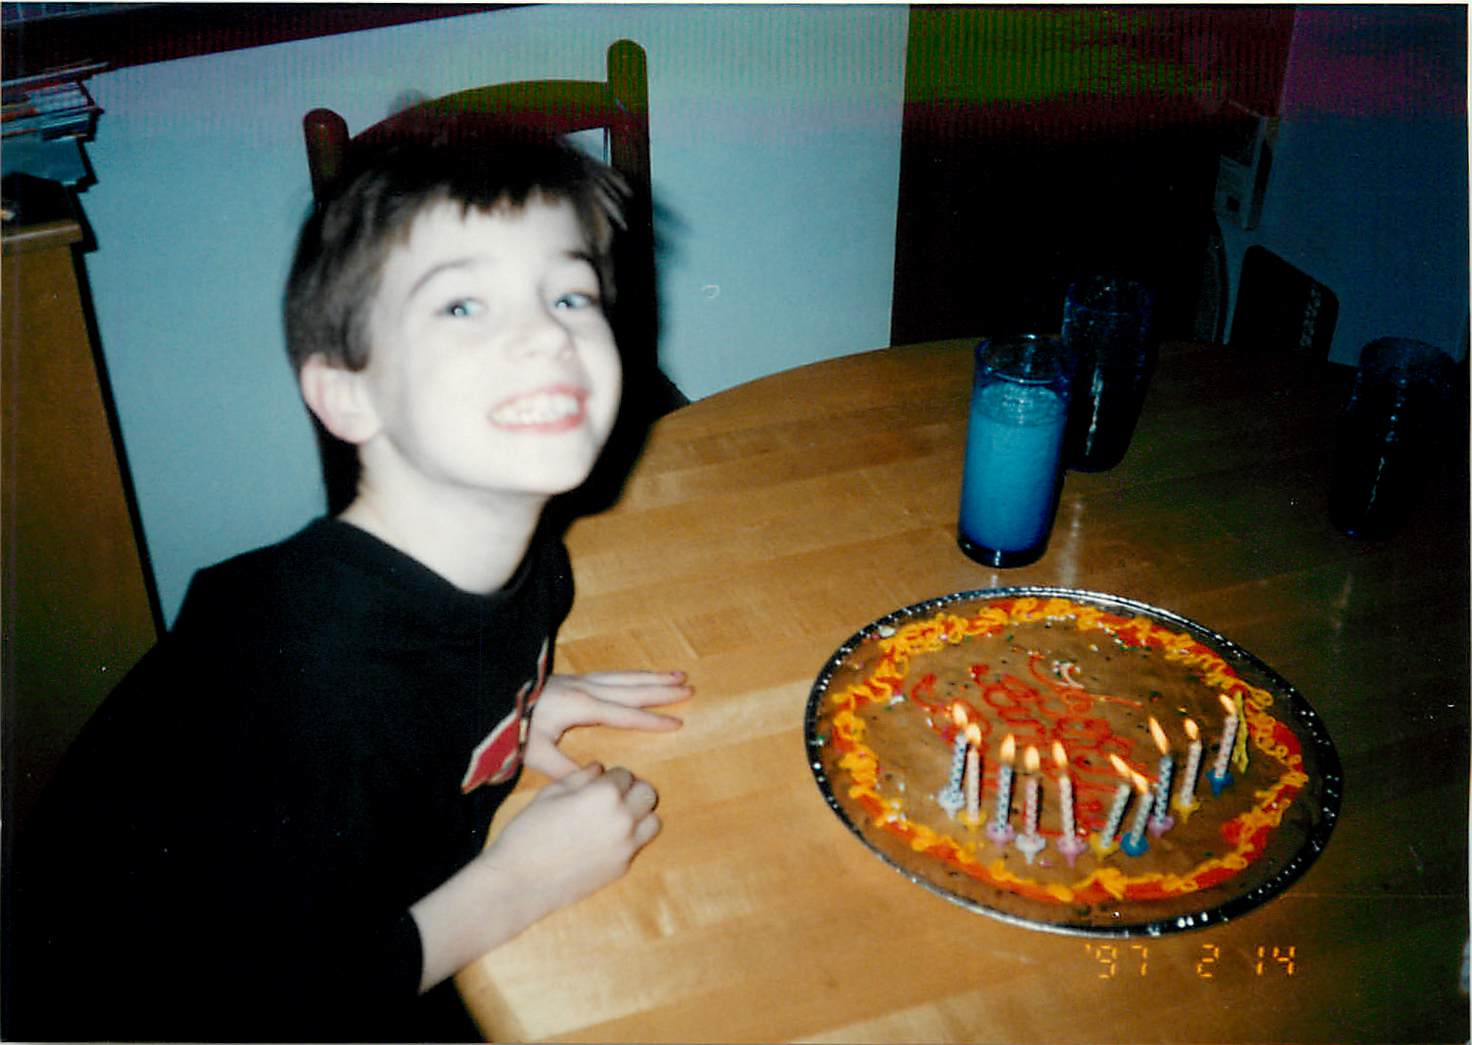 Dane birthday 1997